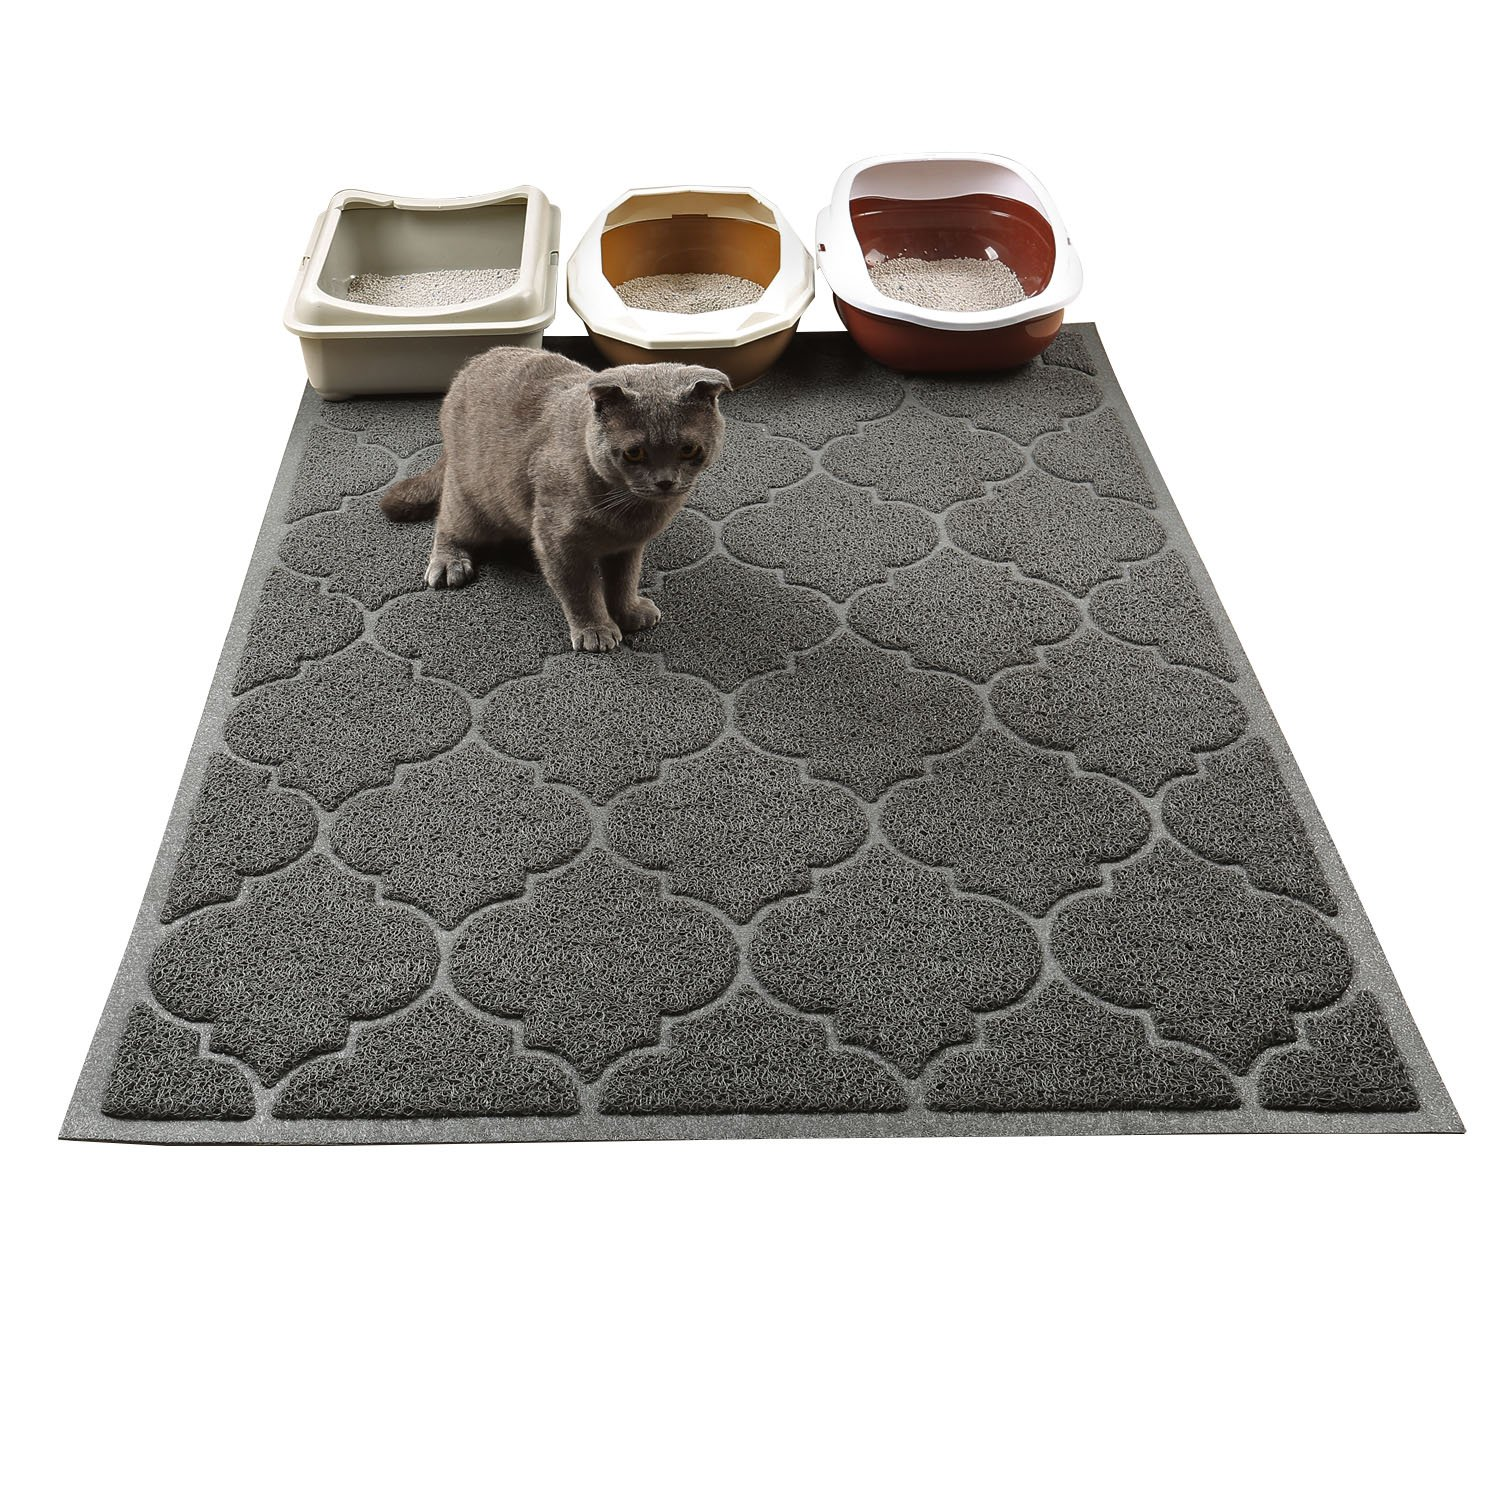 Cat Litter Mat, XL Super Size, Phthalate Free, Easy to Clean, Durable, Soft on Paws, Large 47'' x 36'' litter mat.